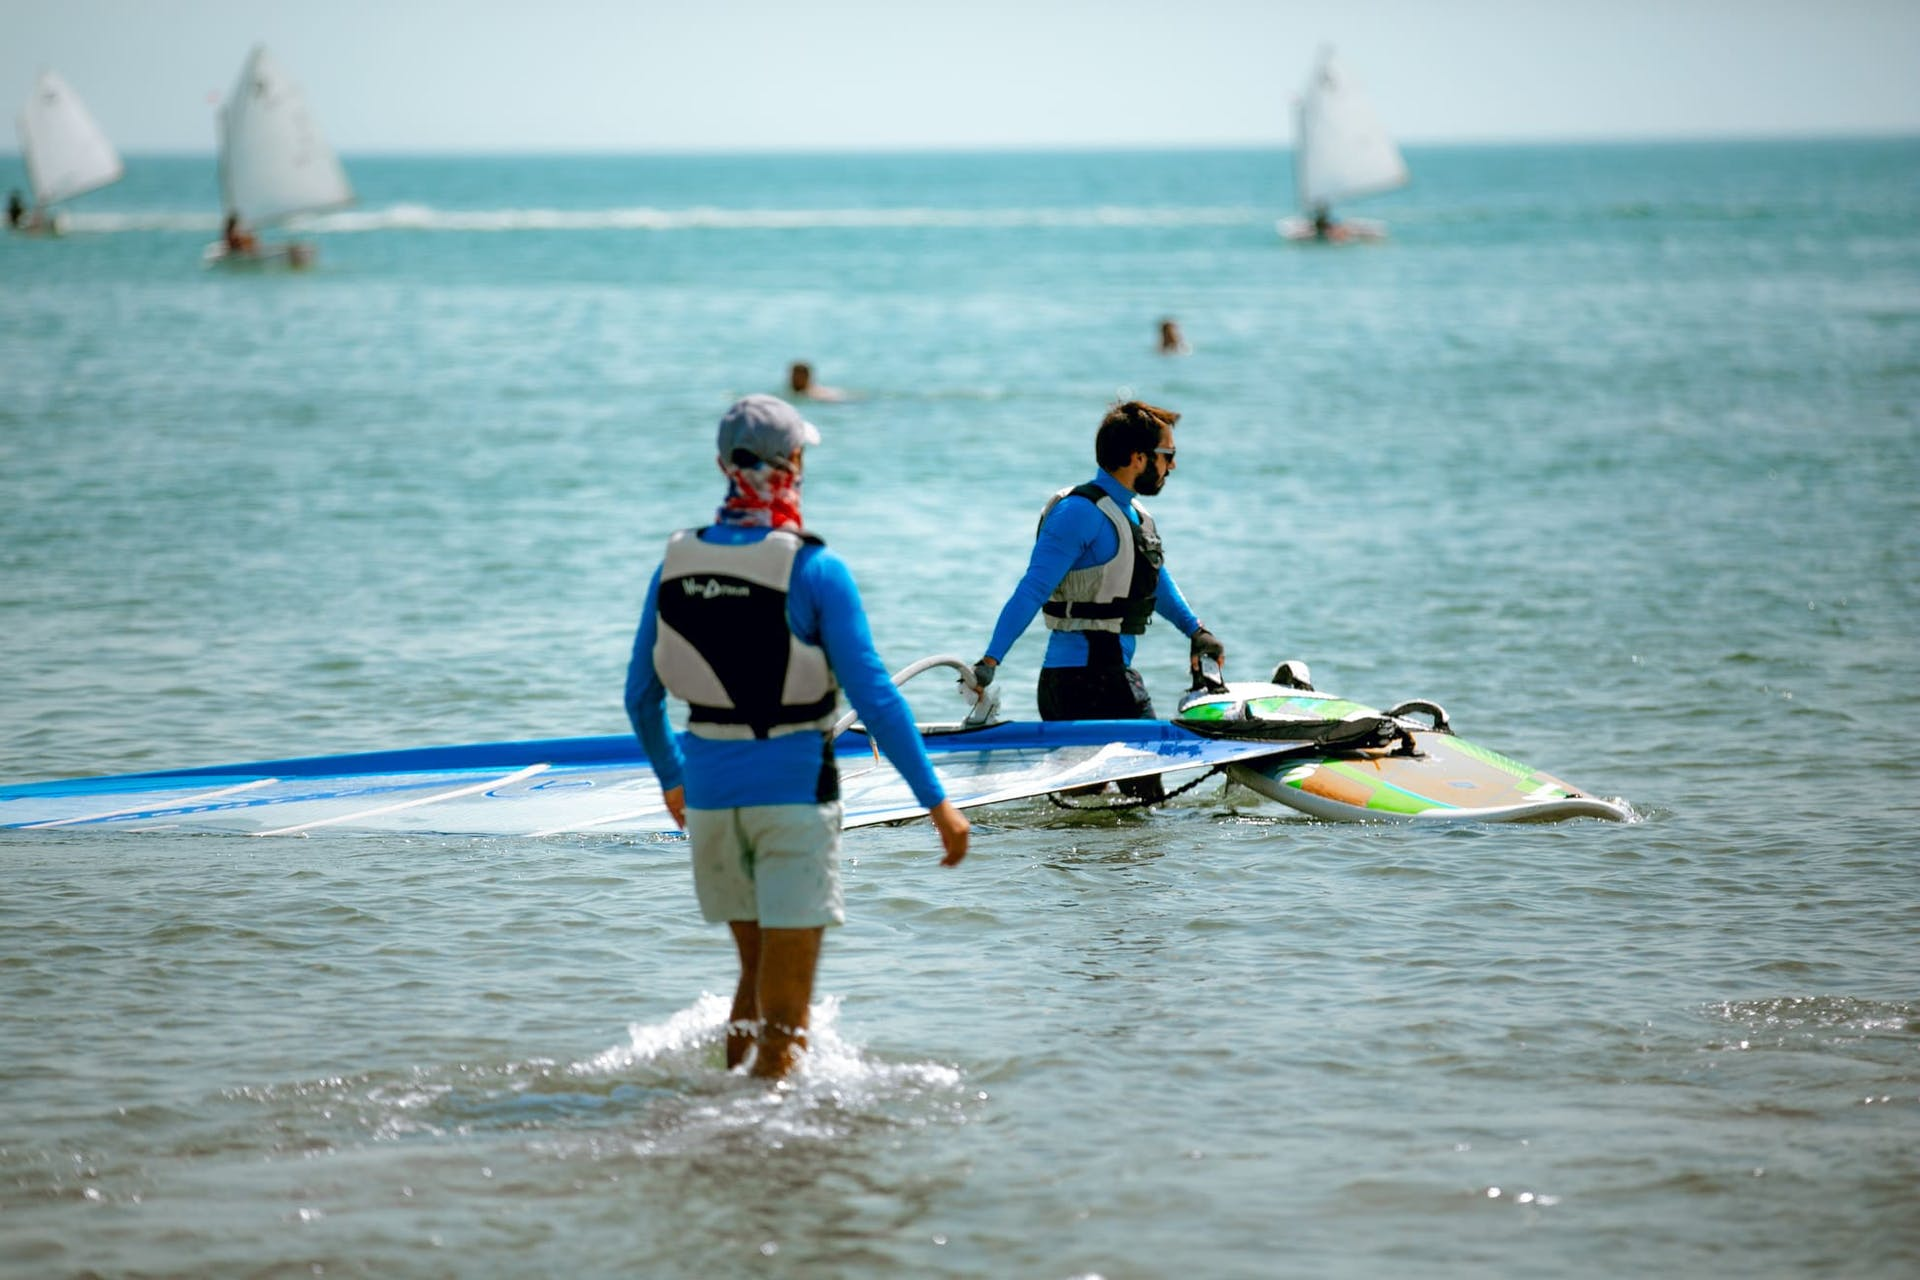 Windsurfing team members on a shore